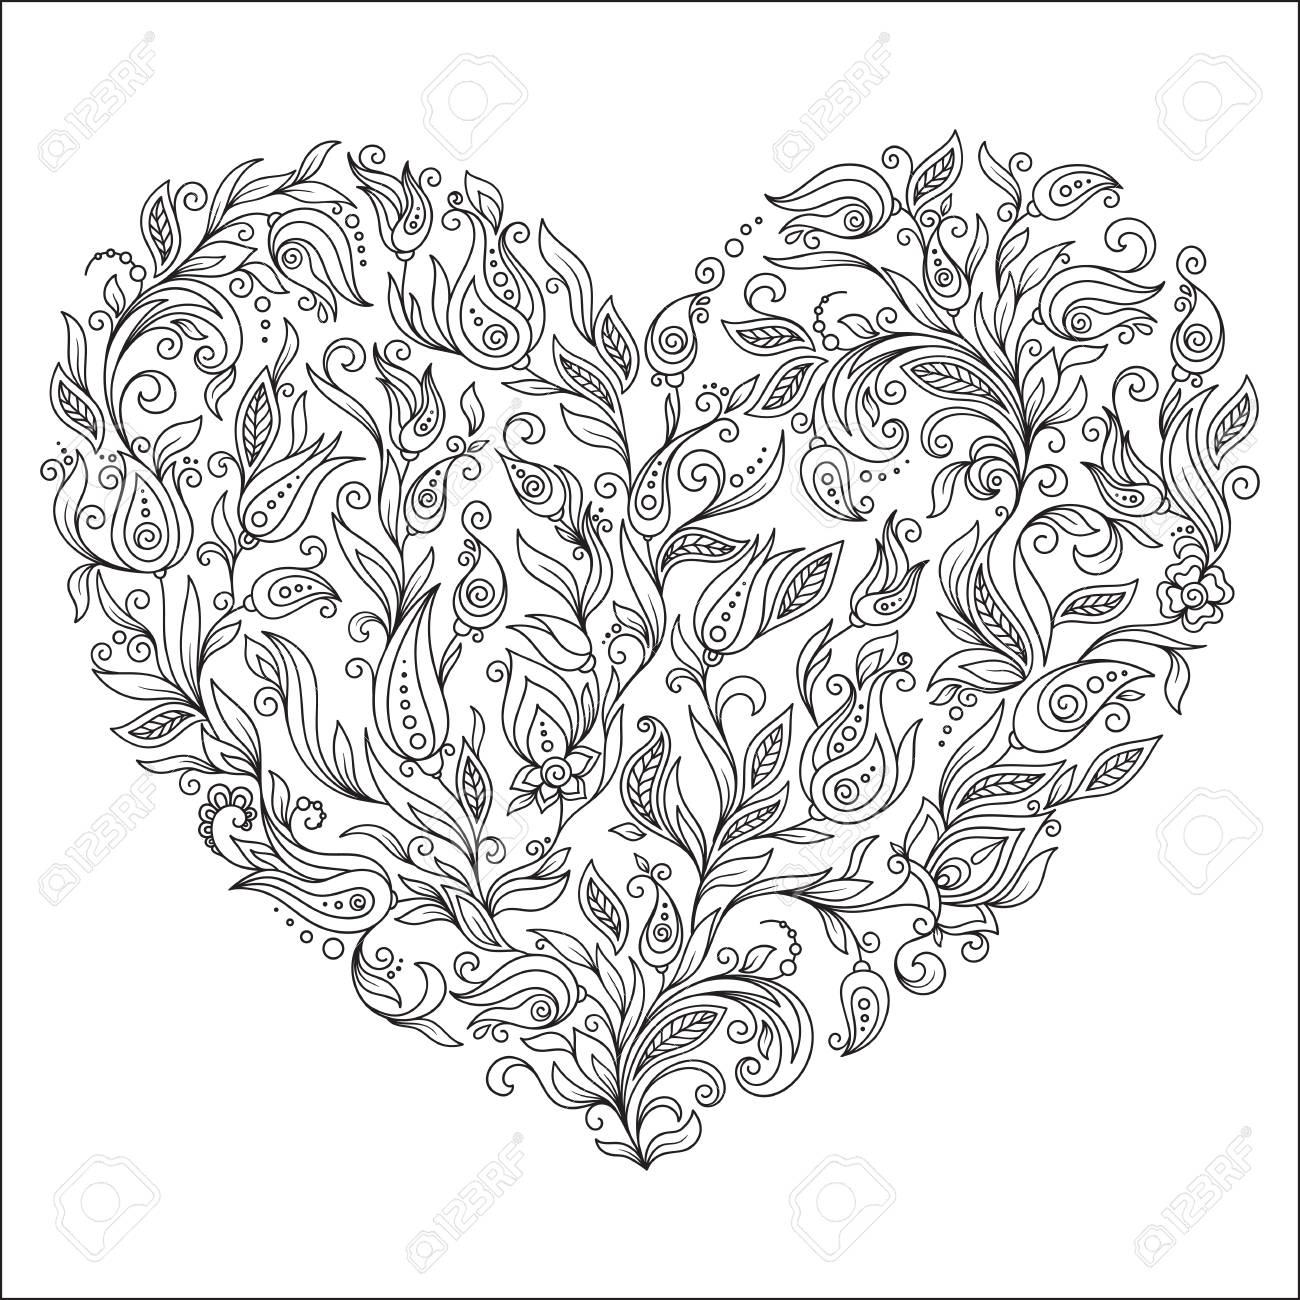 Coloring Page Flower Heart St Valentines Day Greeting Card Hand Made Print Digital Art